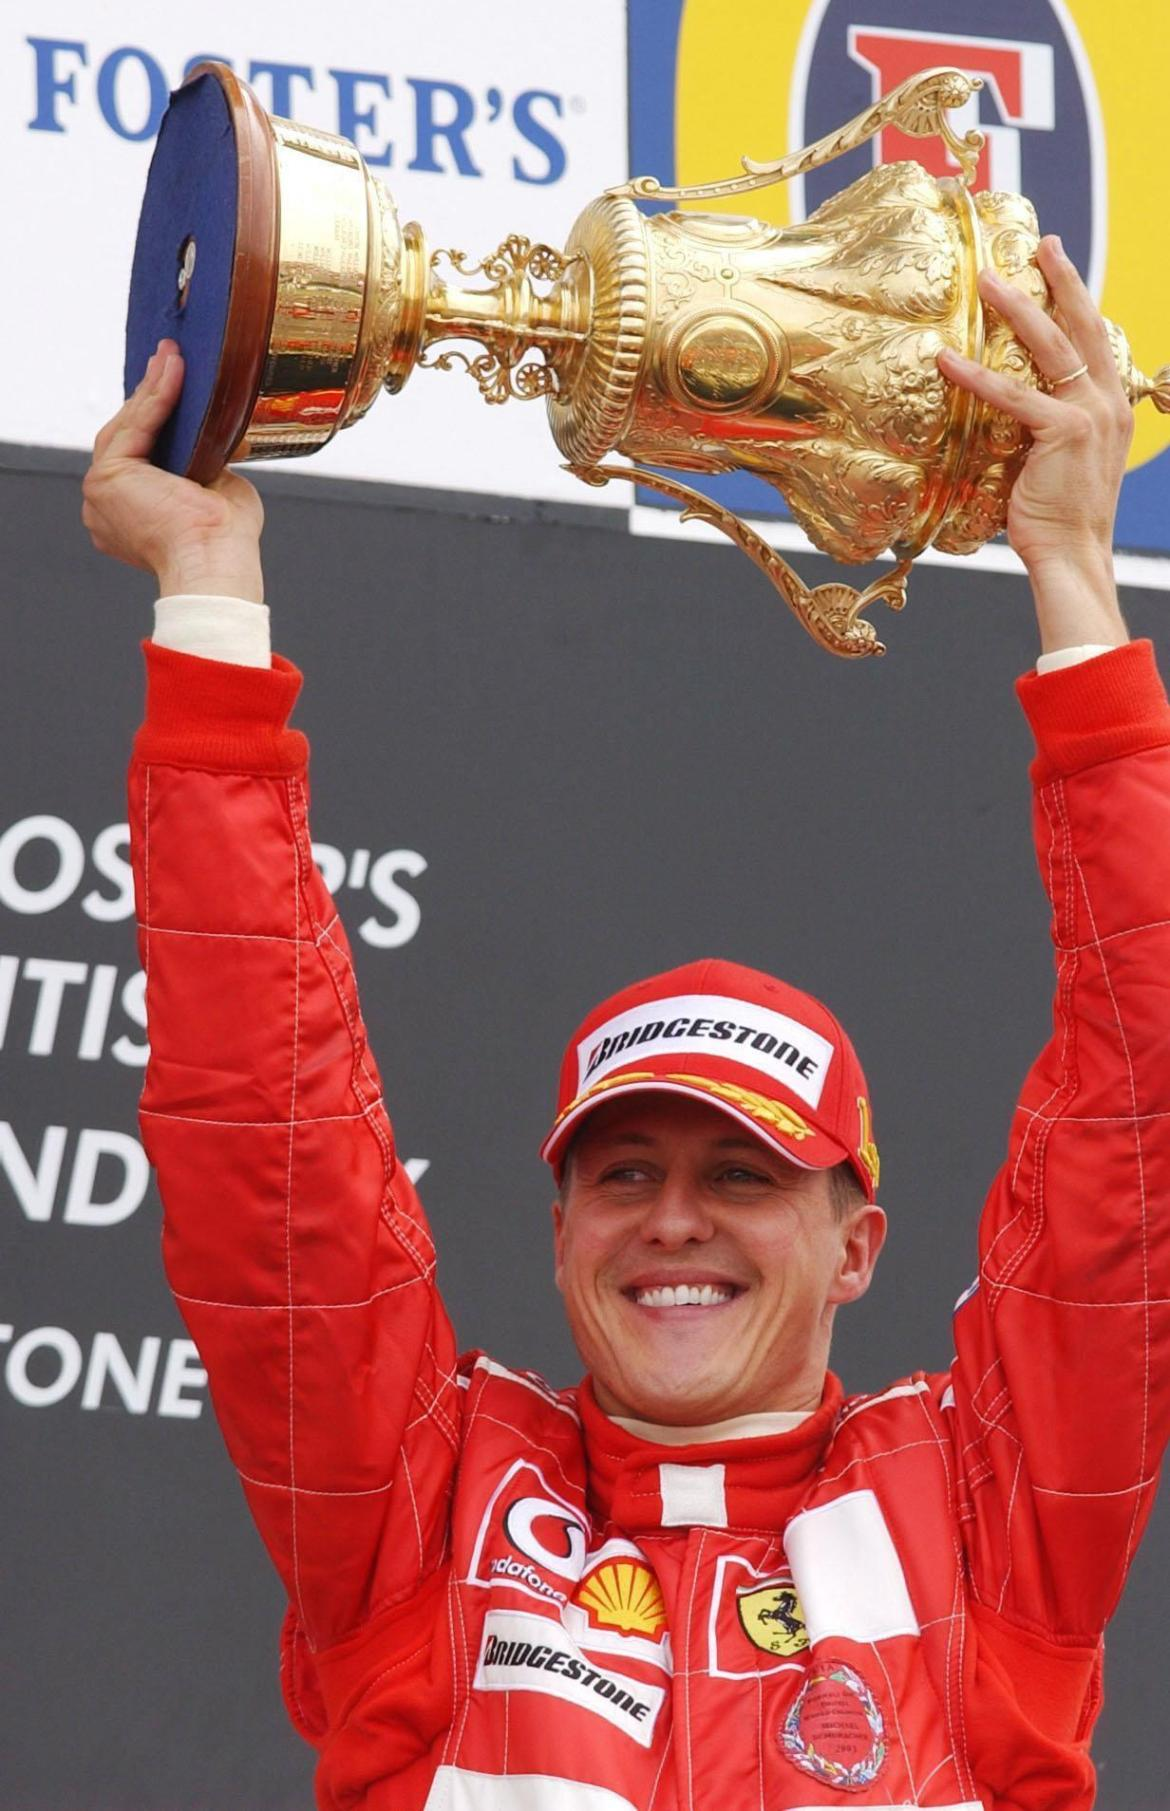 Michael Schumacher had a focused public persona - but he was much more relaxed behind closed doors